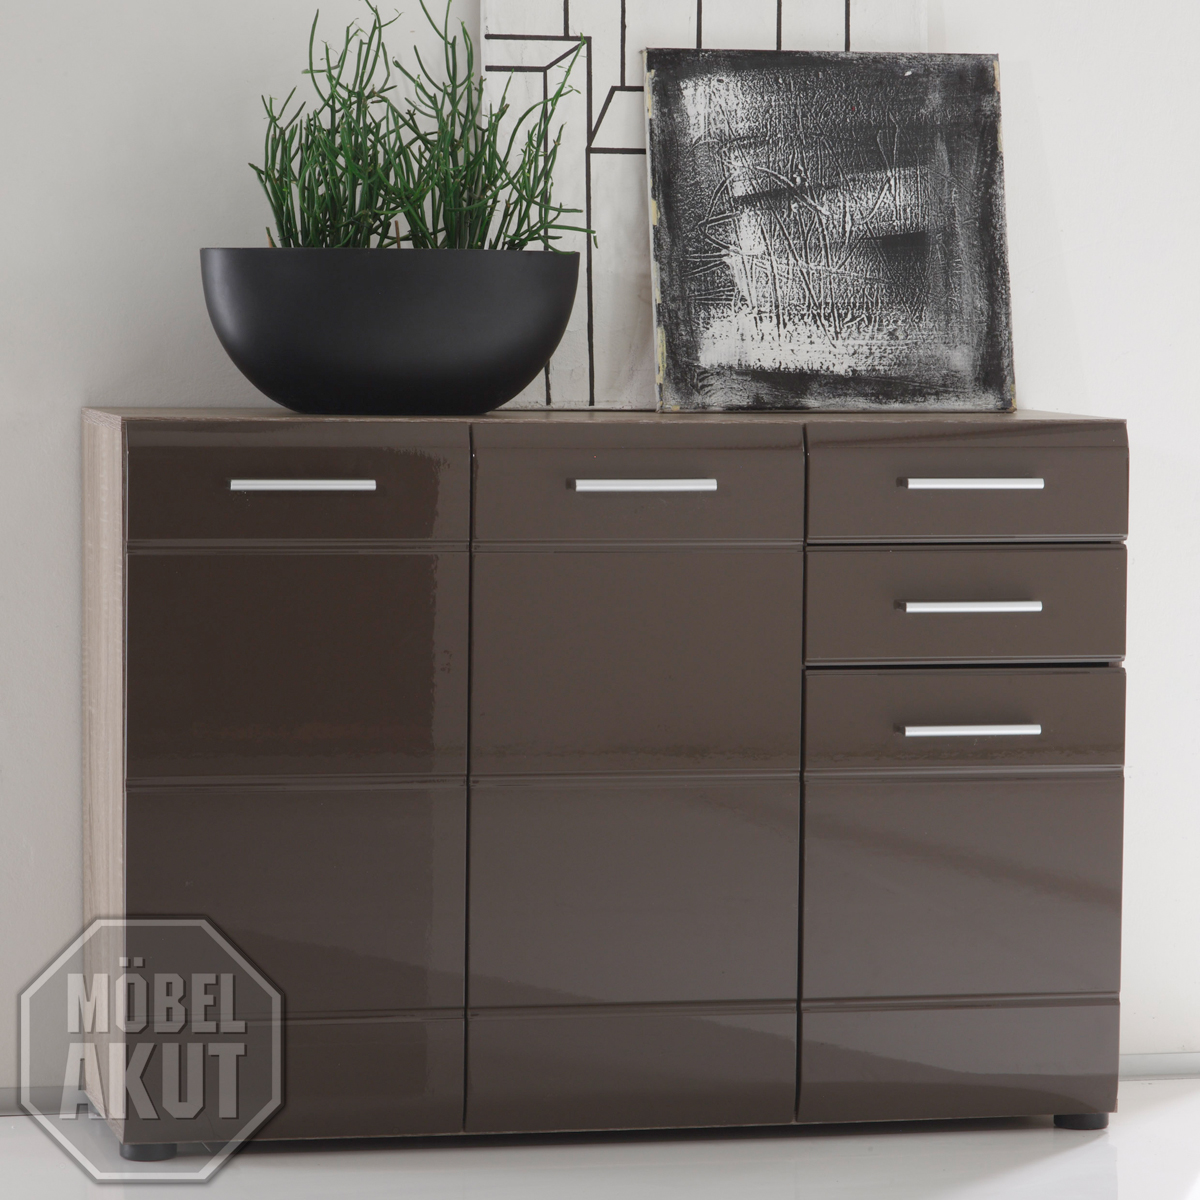 kommode iii anoma sideboard sonoma eiche s gerau dunkel braun hochglanz ebay. Black Bedroom Furniture Sets. Home Design Ideas